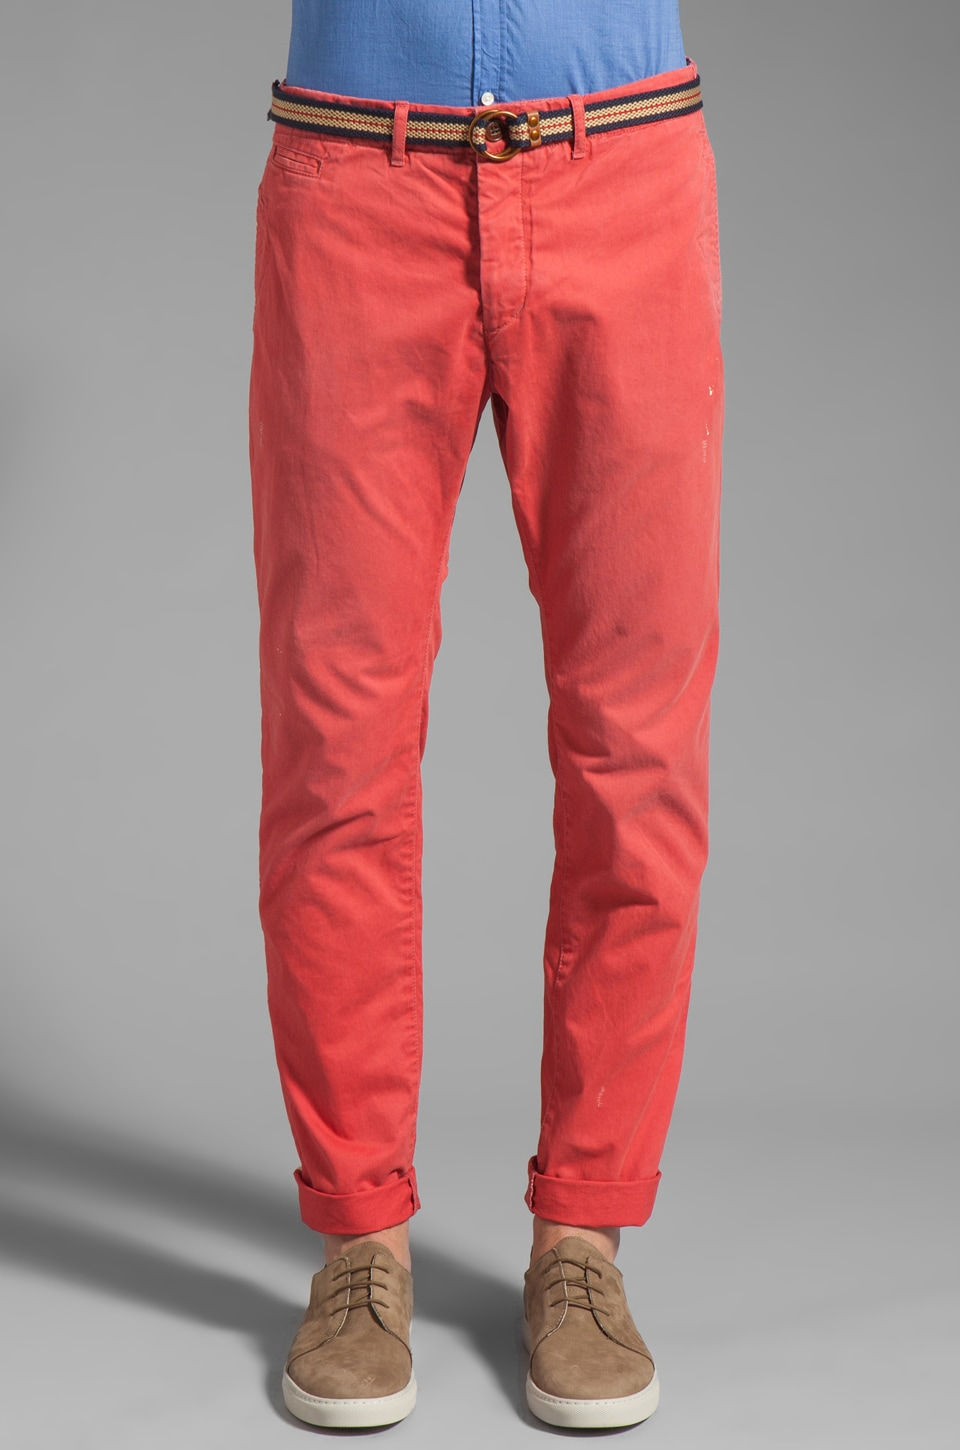 Scotch & Soda Belted Chino Pant in Holly Berry